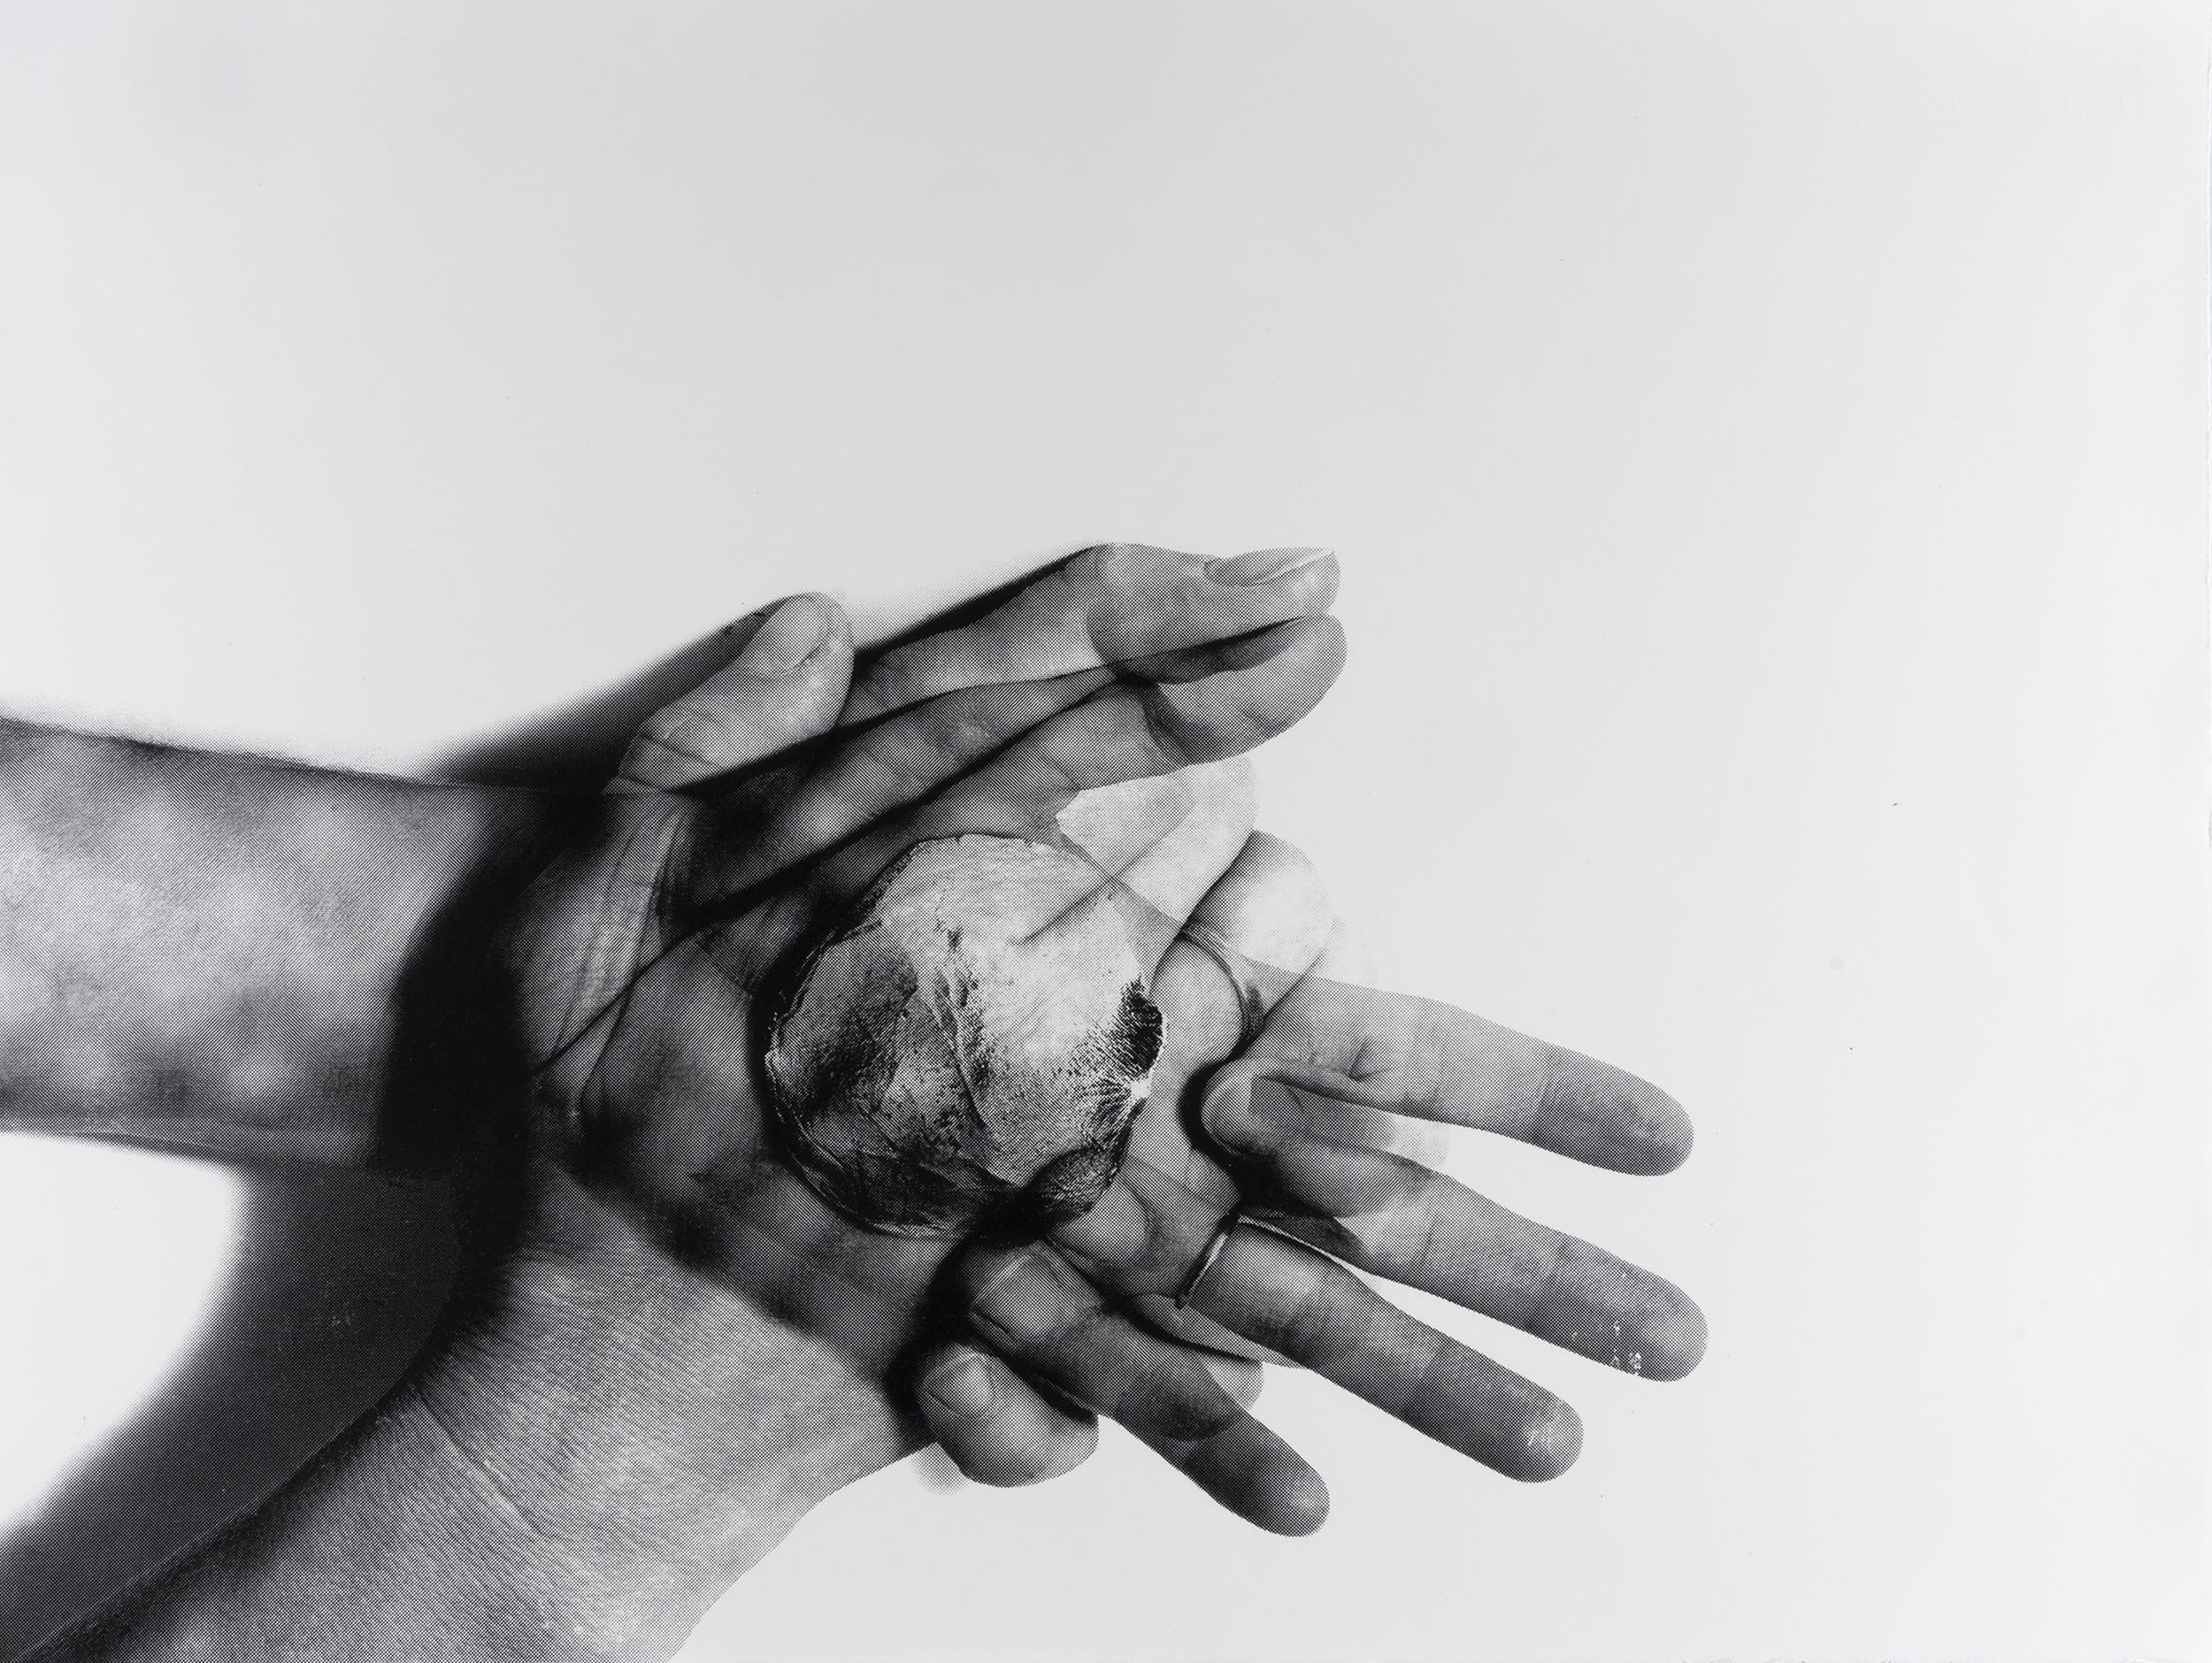 Silkscreen print of two hands pressing palm-to-palm and shaping a ceramic disk, which can be seen via an overlaid image effect similar to an X-ray.